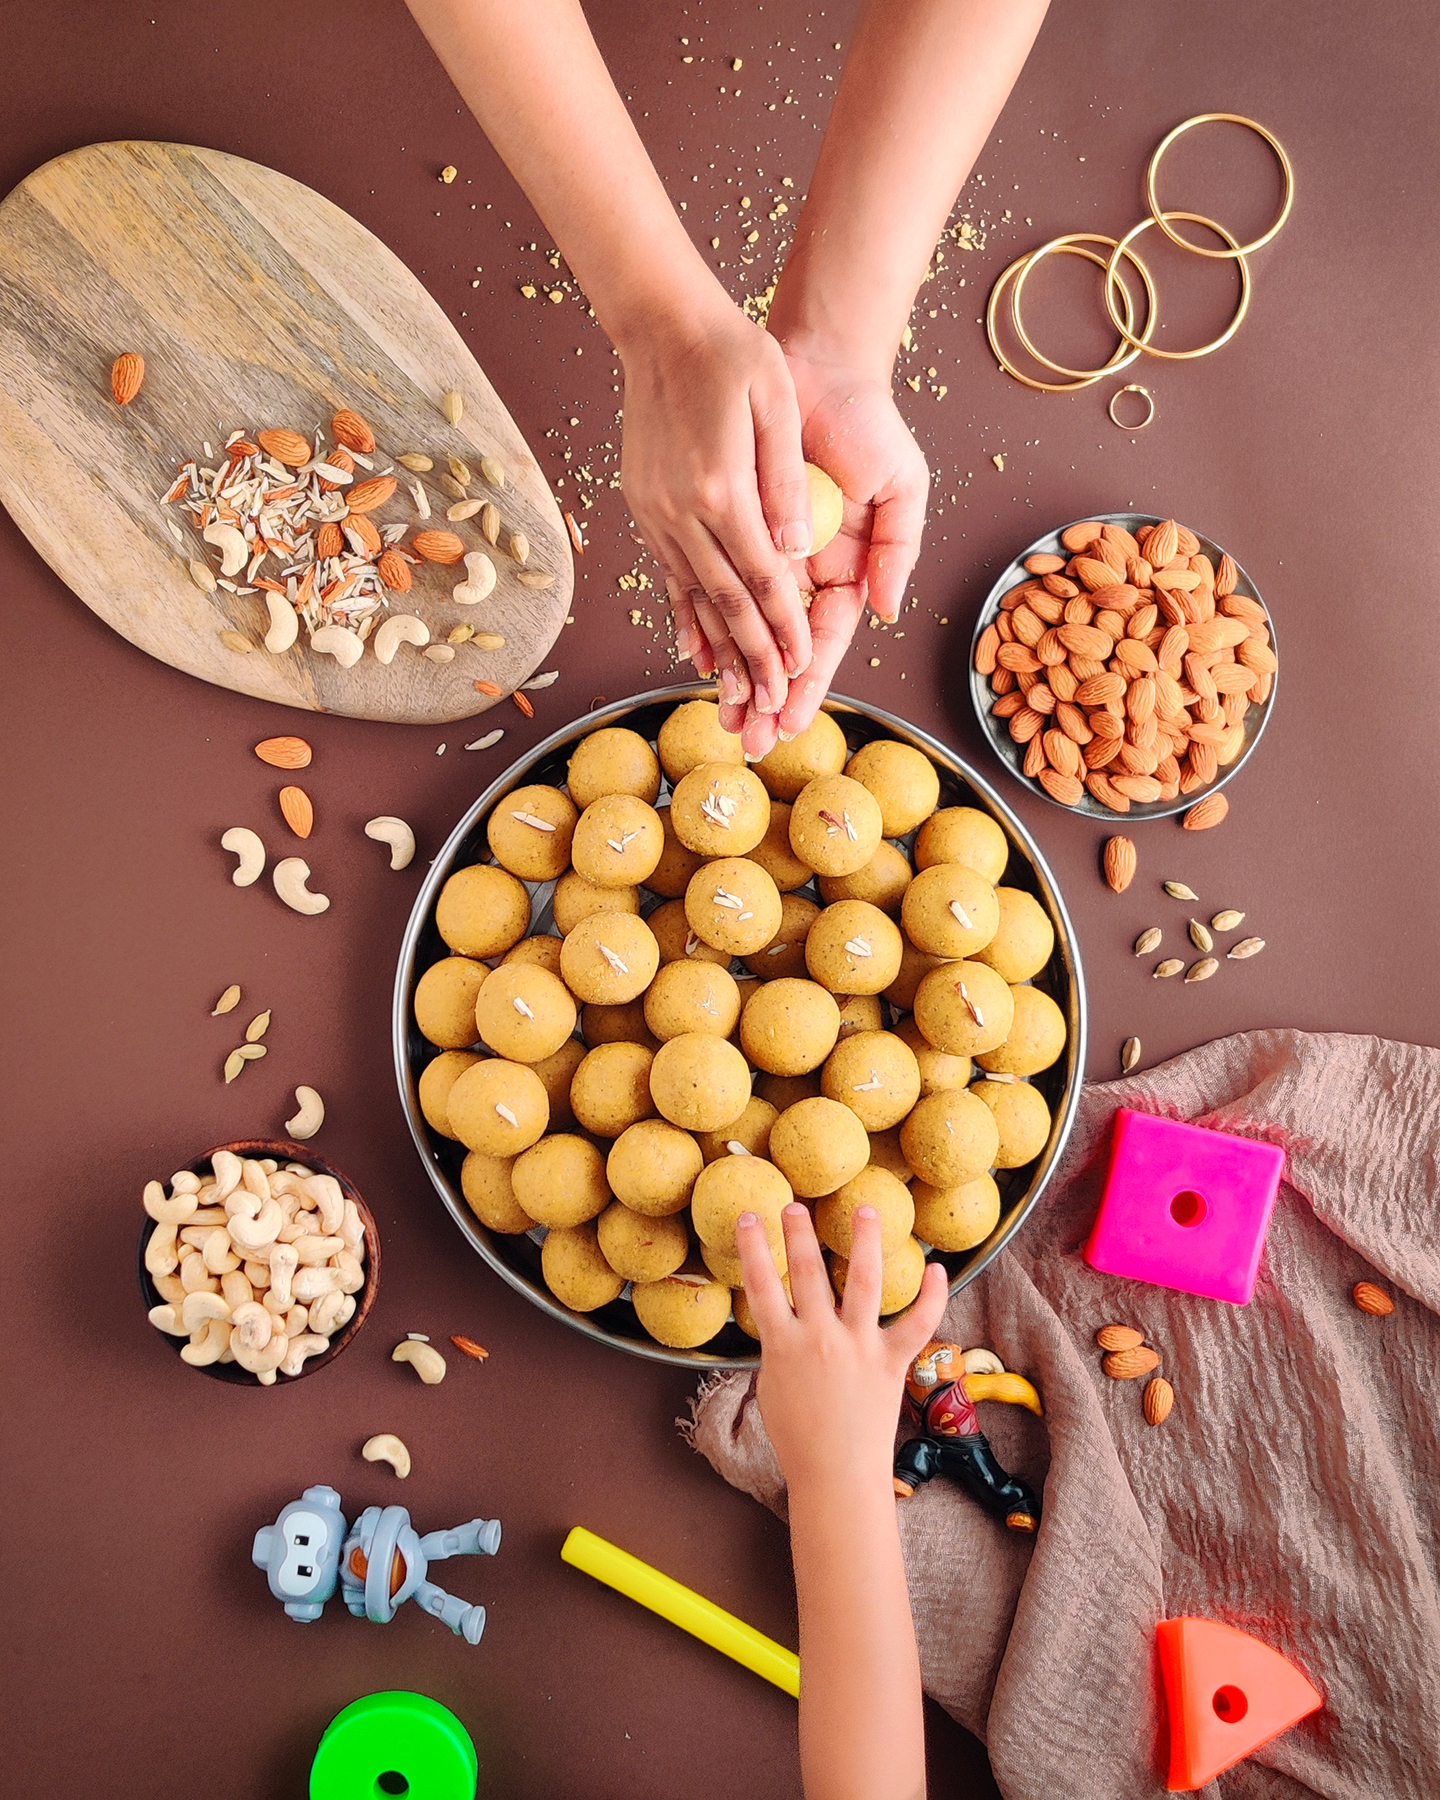 I shot this image on my cell phone, depicts the perfect situation of my childhood when I used to start eating those Besan Laddoos as soon as they were ready. Bring back all the memories!